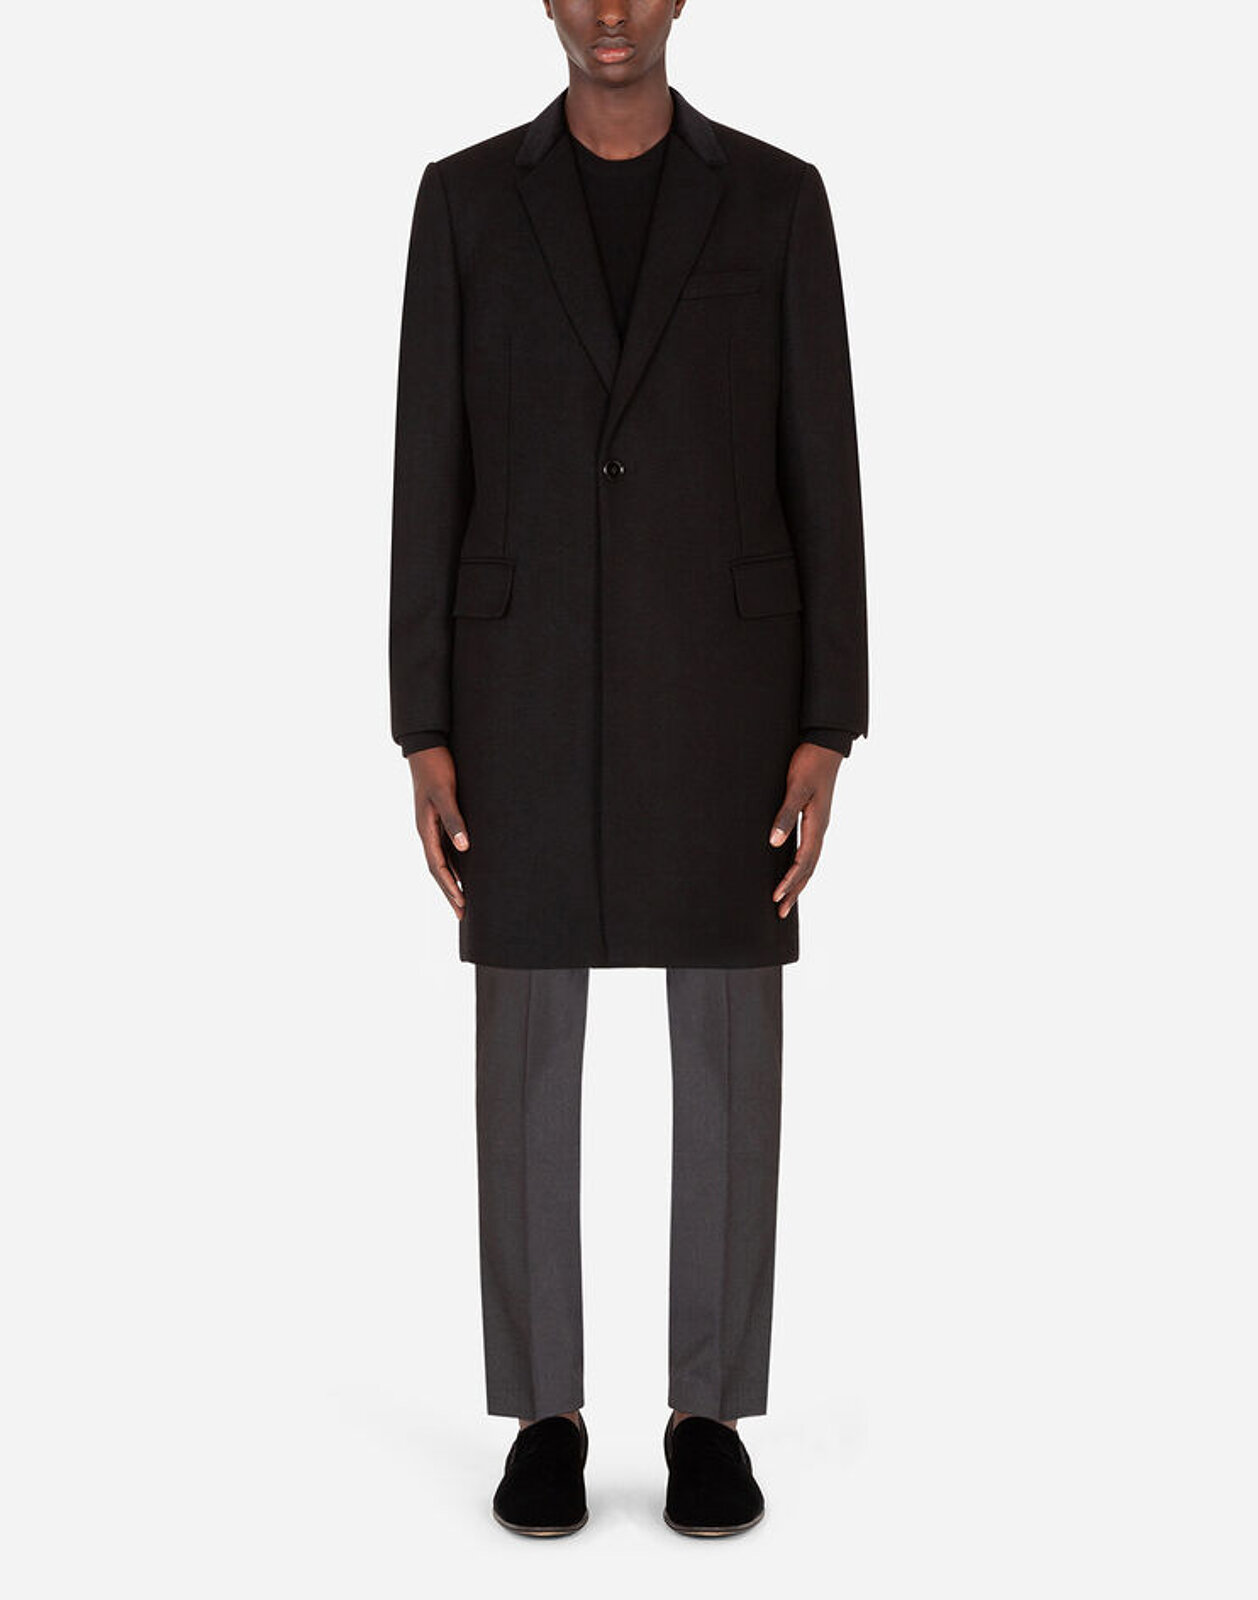 Wool And Cashmere Coat - Dolce & Gabbana